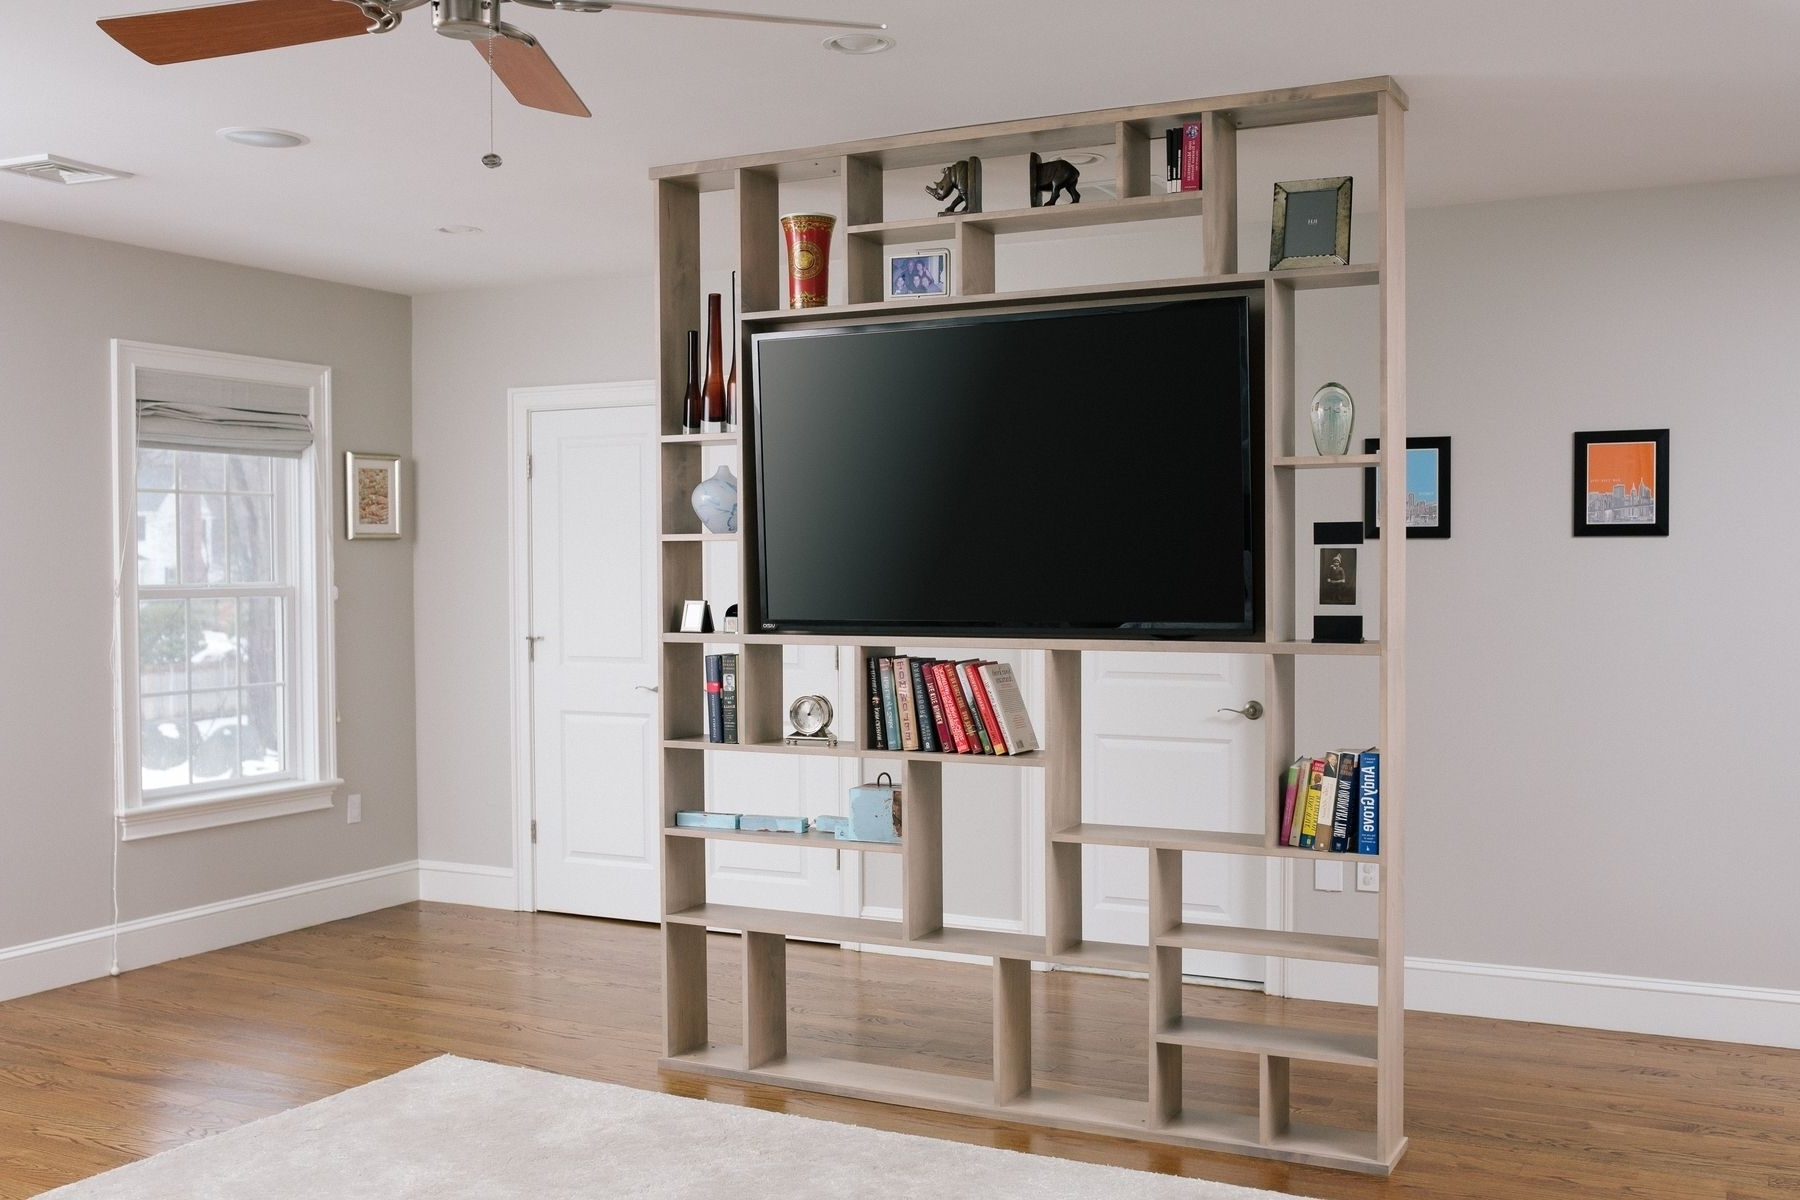 Trendy Hand Crafted Lexington Room Divider / Bookshelf / Tv Standcorl Within Tv Stand Bookcases (View 12 of 15)